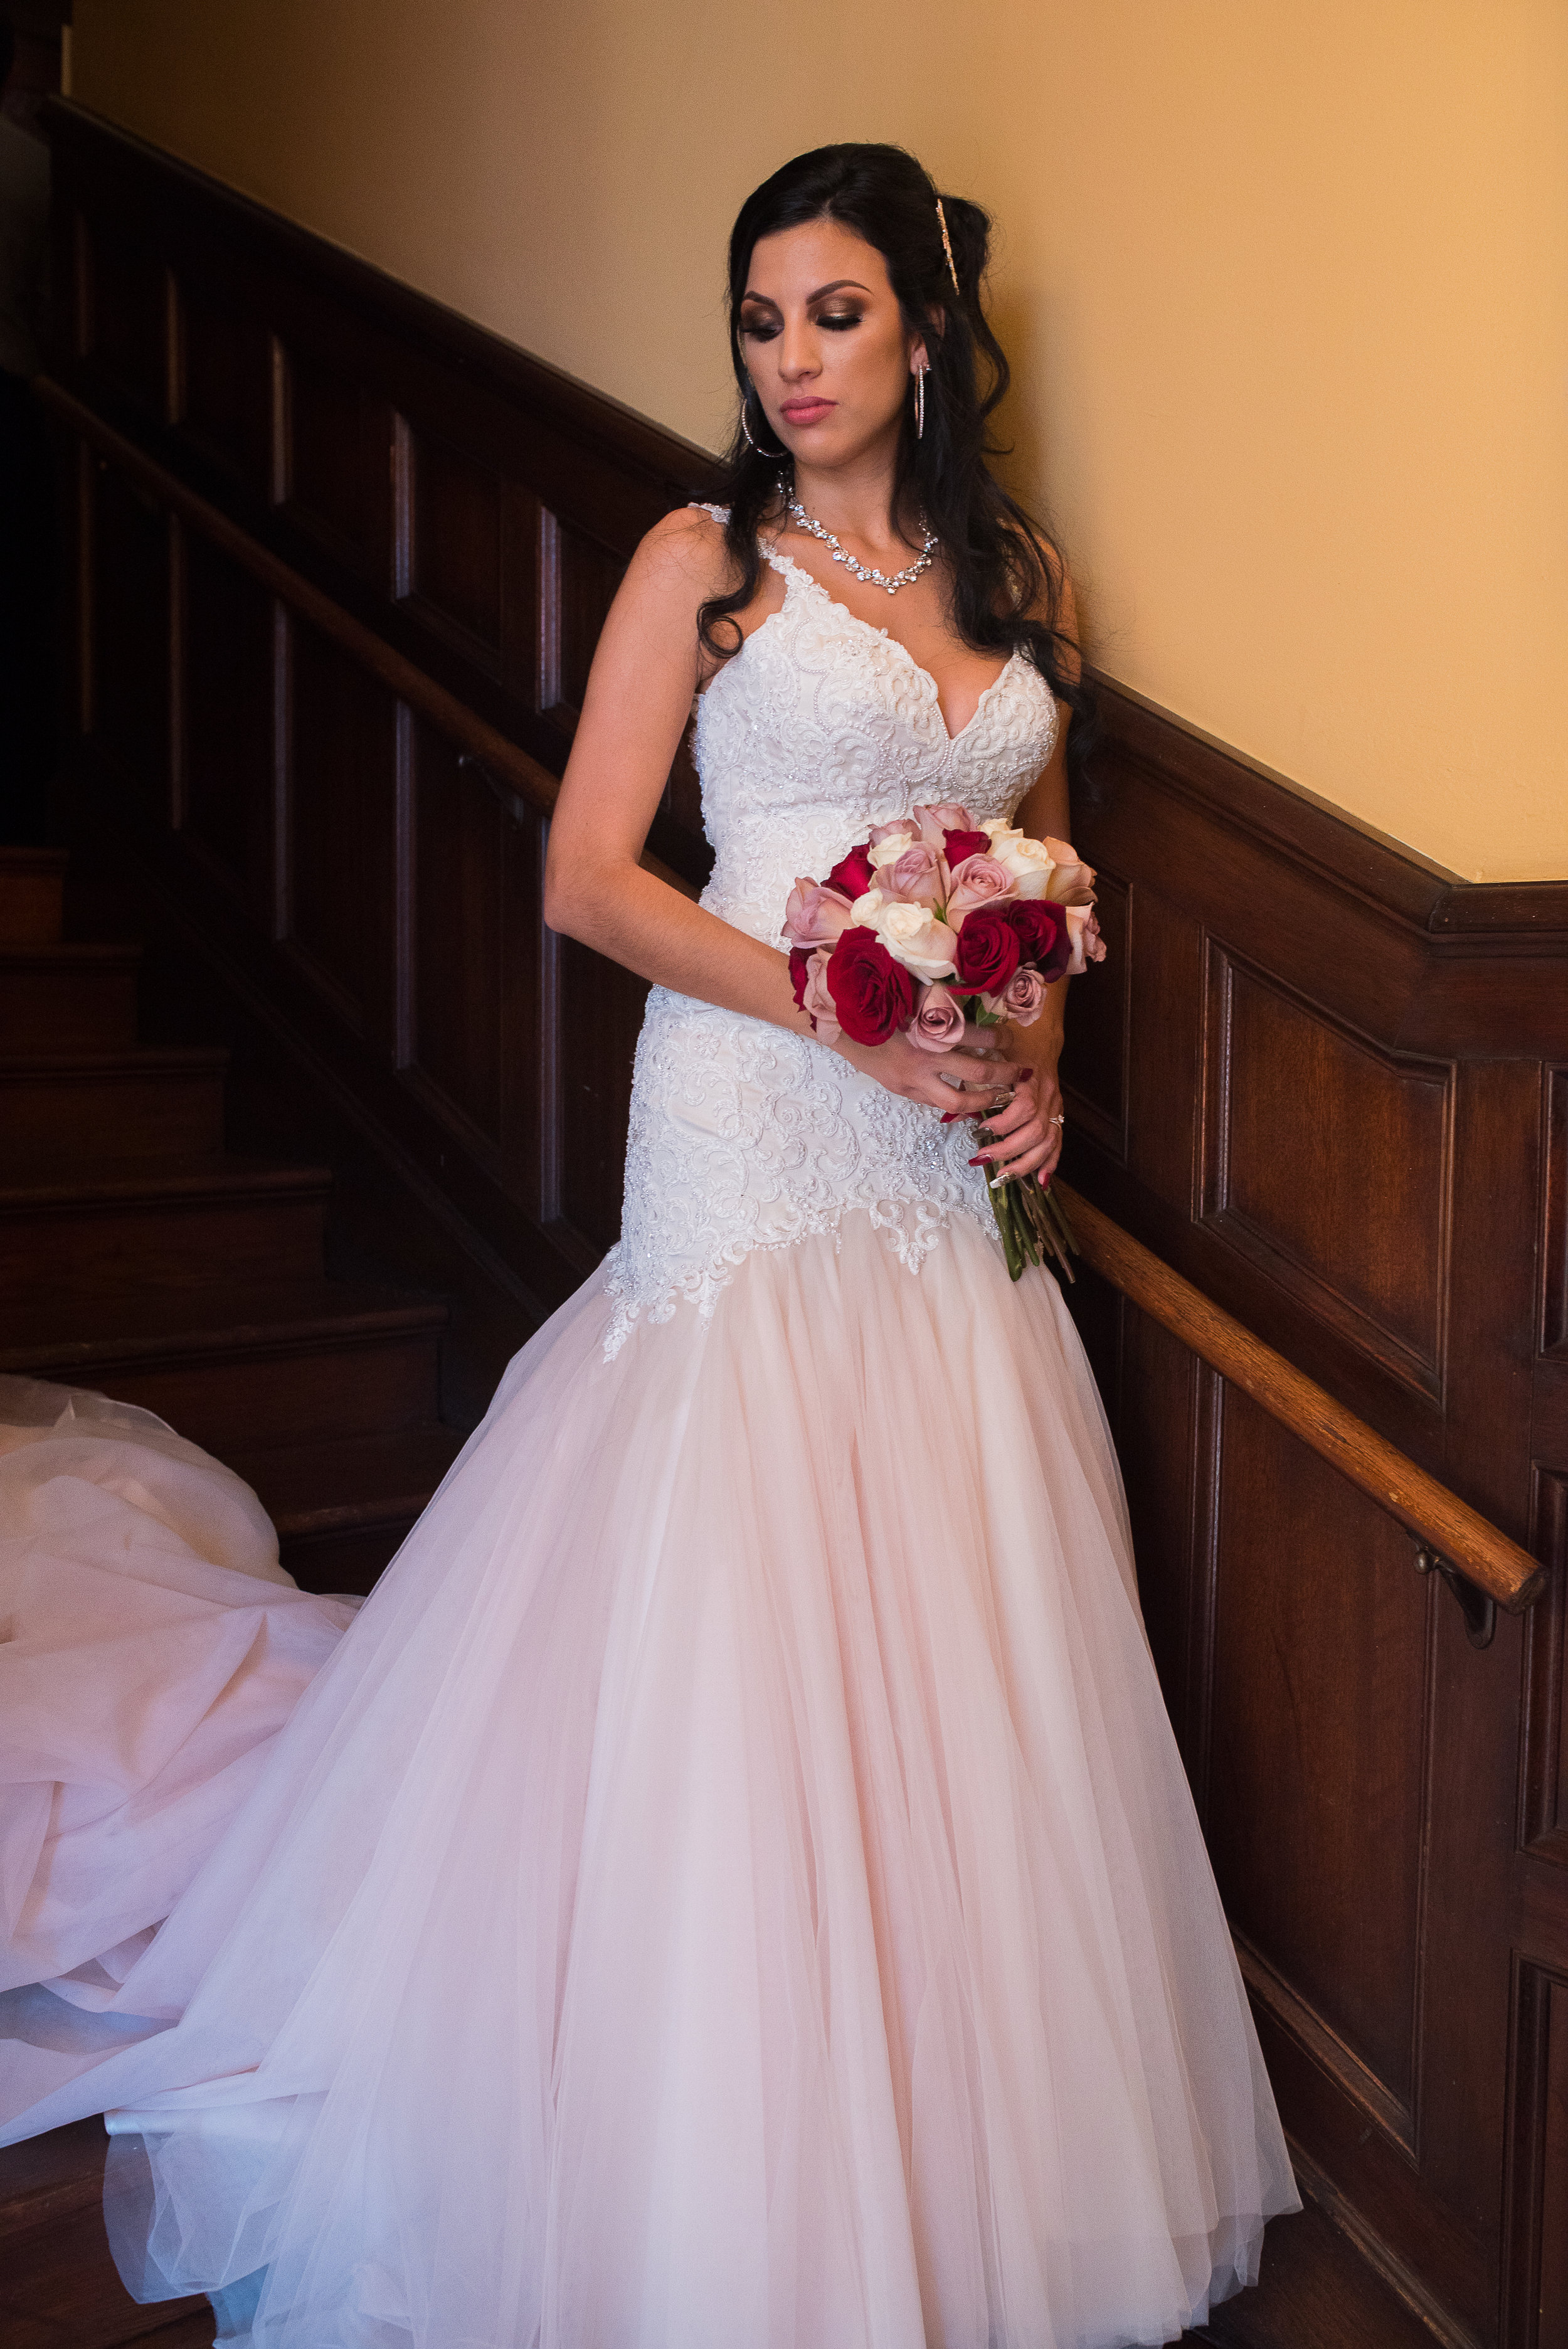 loft-84-riverside-maura-wedding-portrait-3-3.jpg